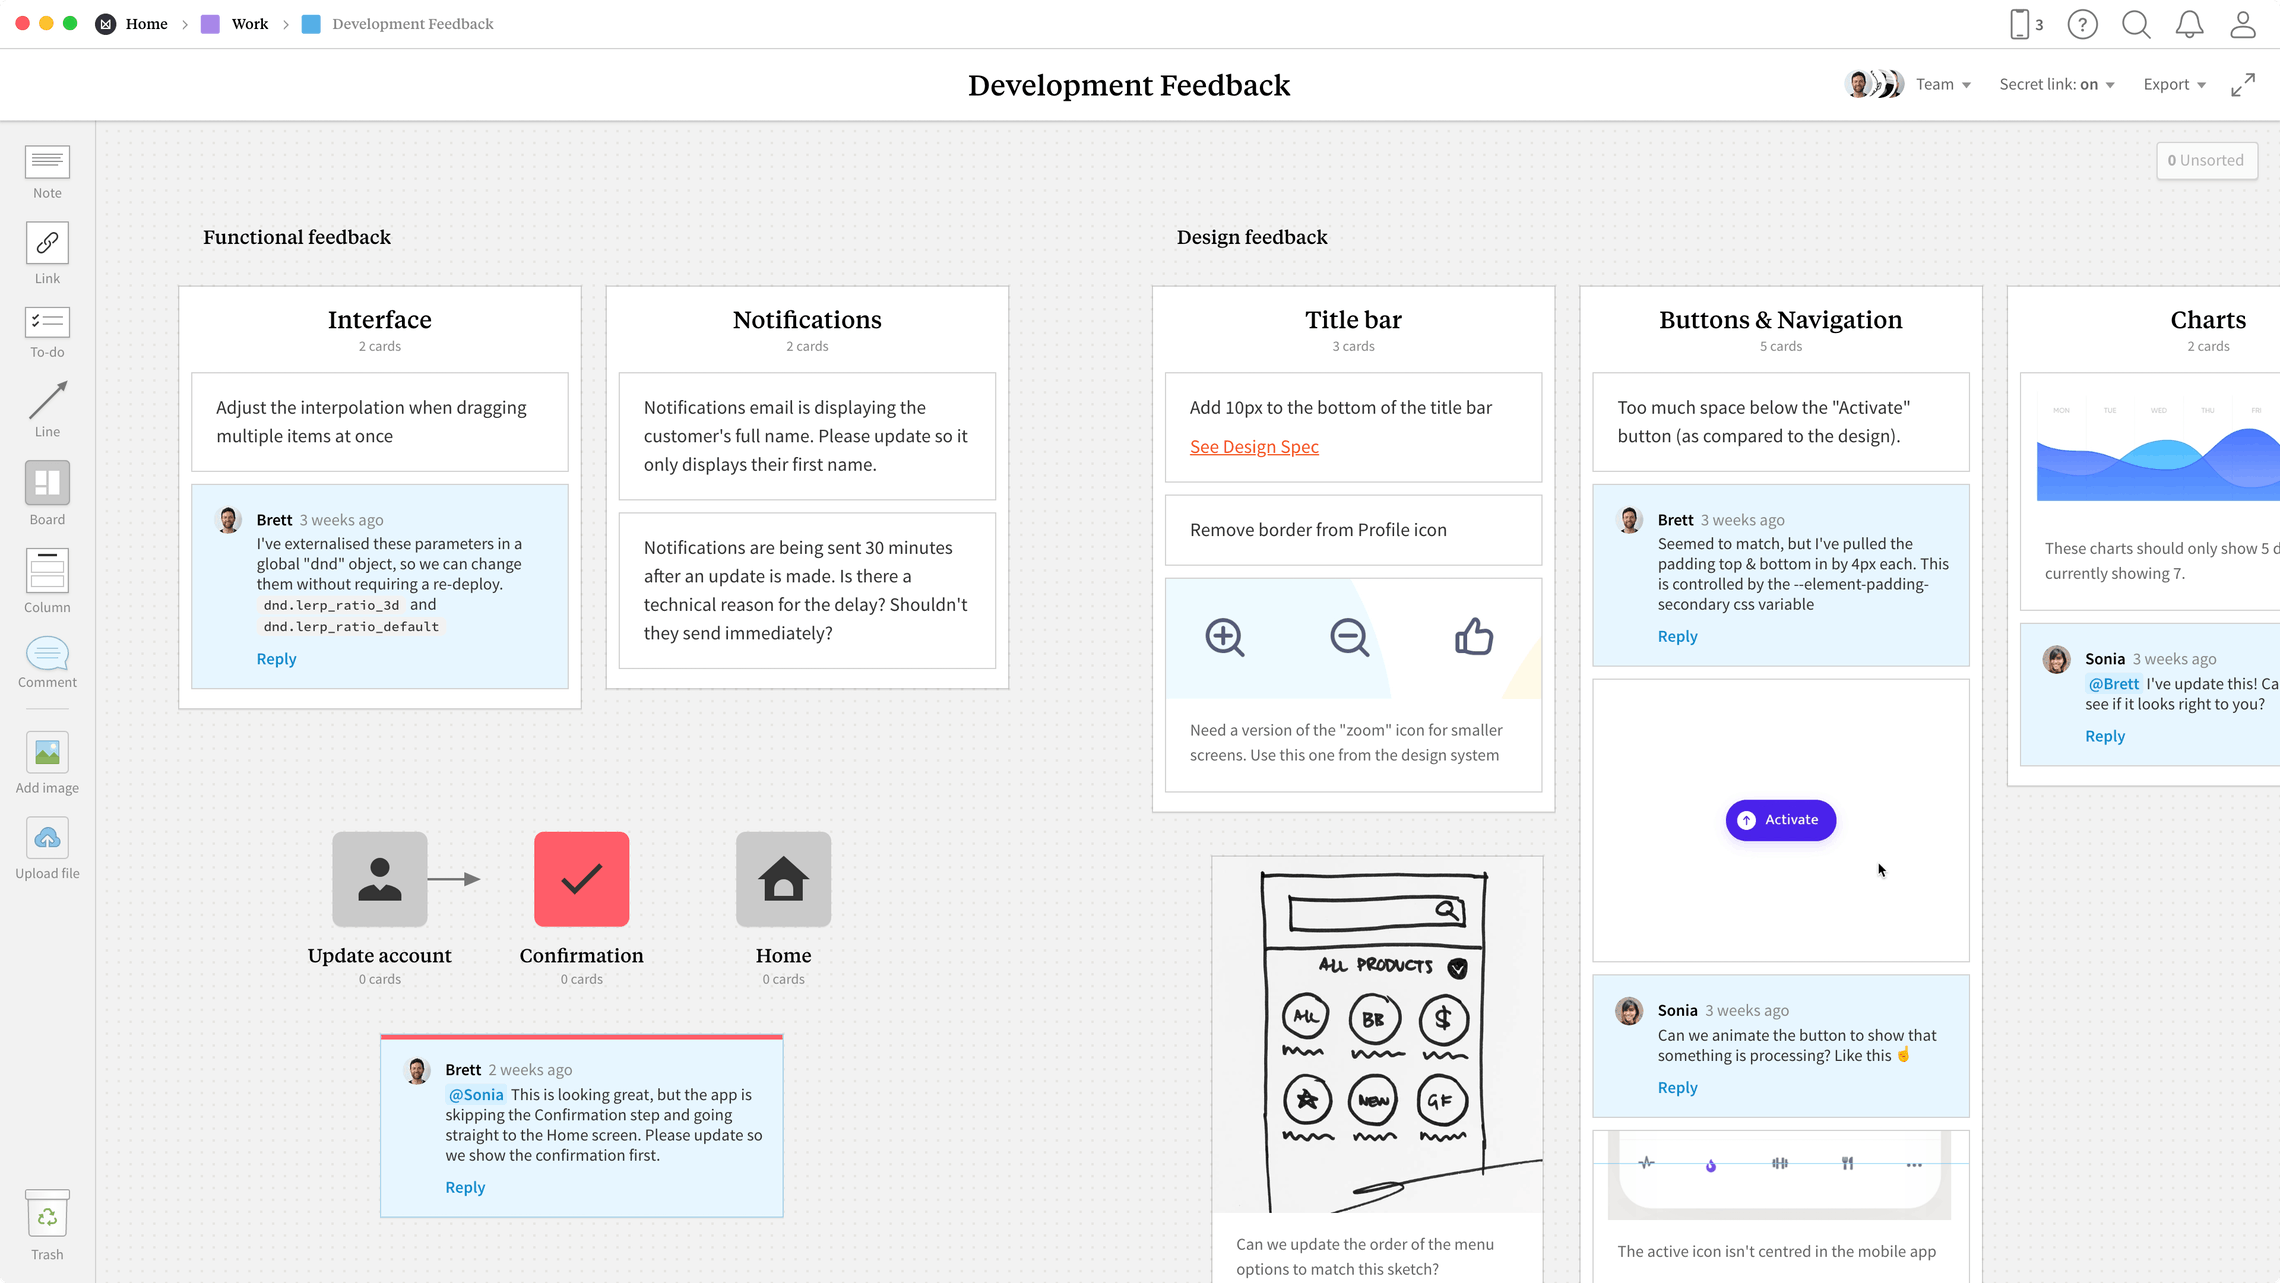 Development Feedback Template, within the Milanote app